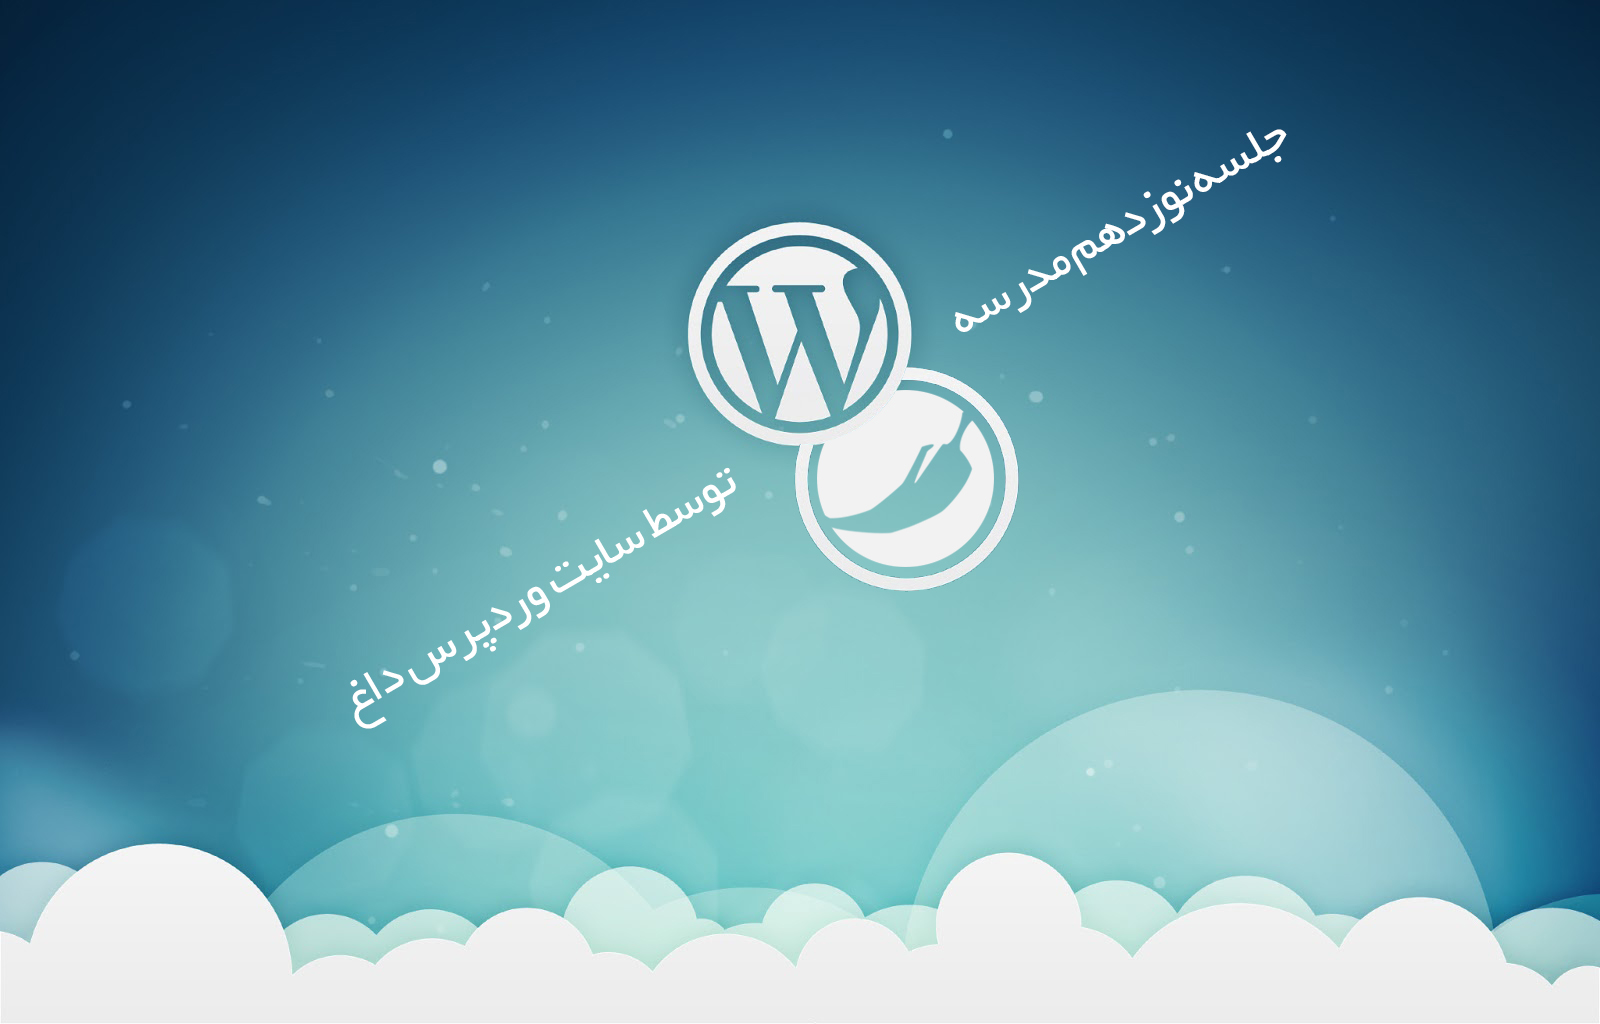 school-wordpress-redwp-19